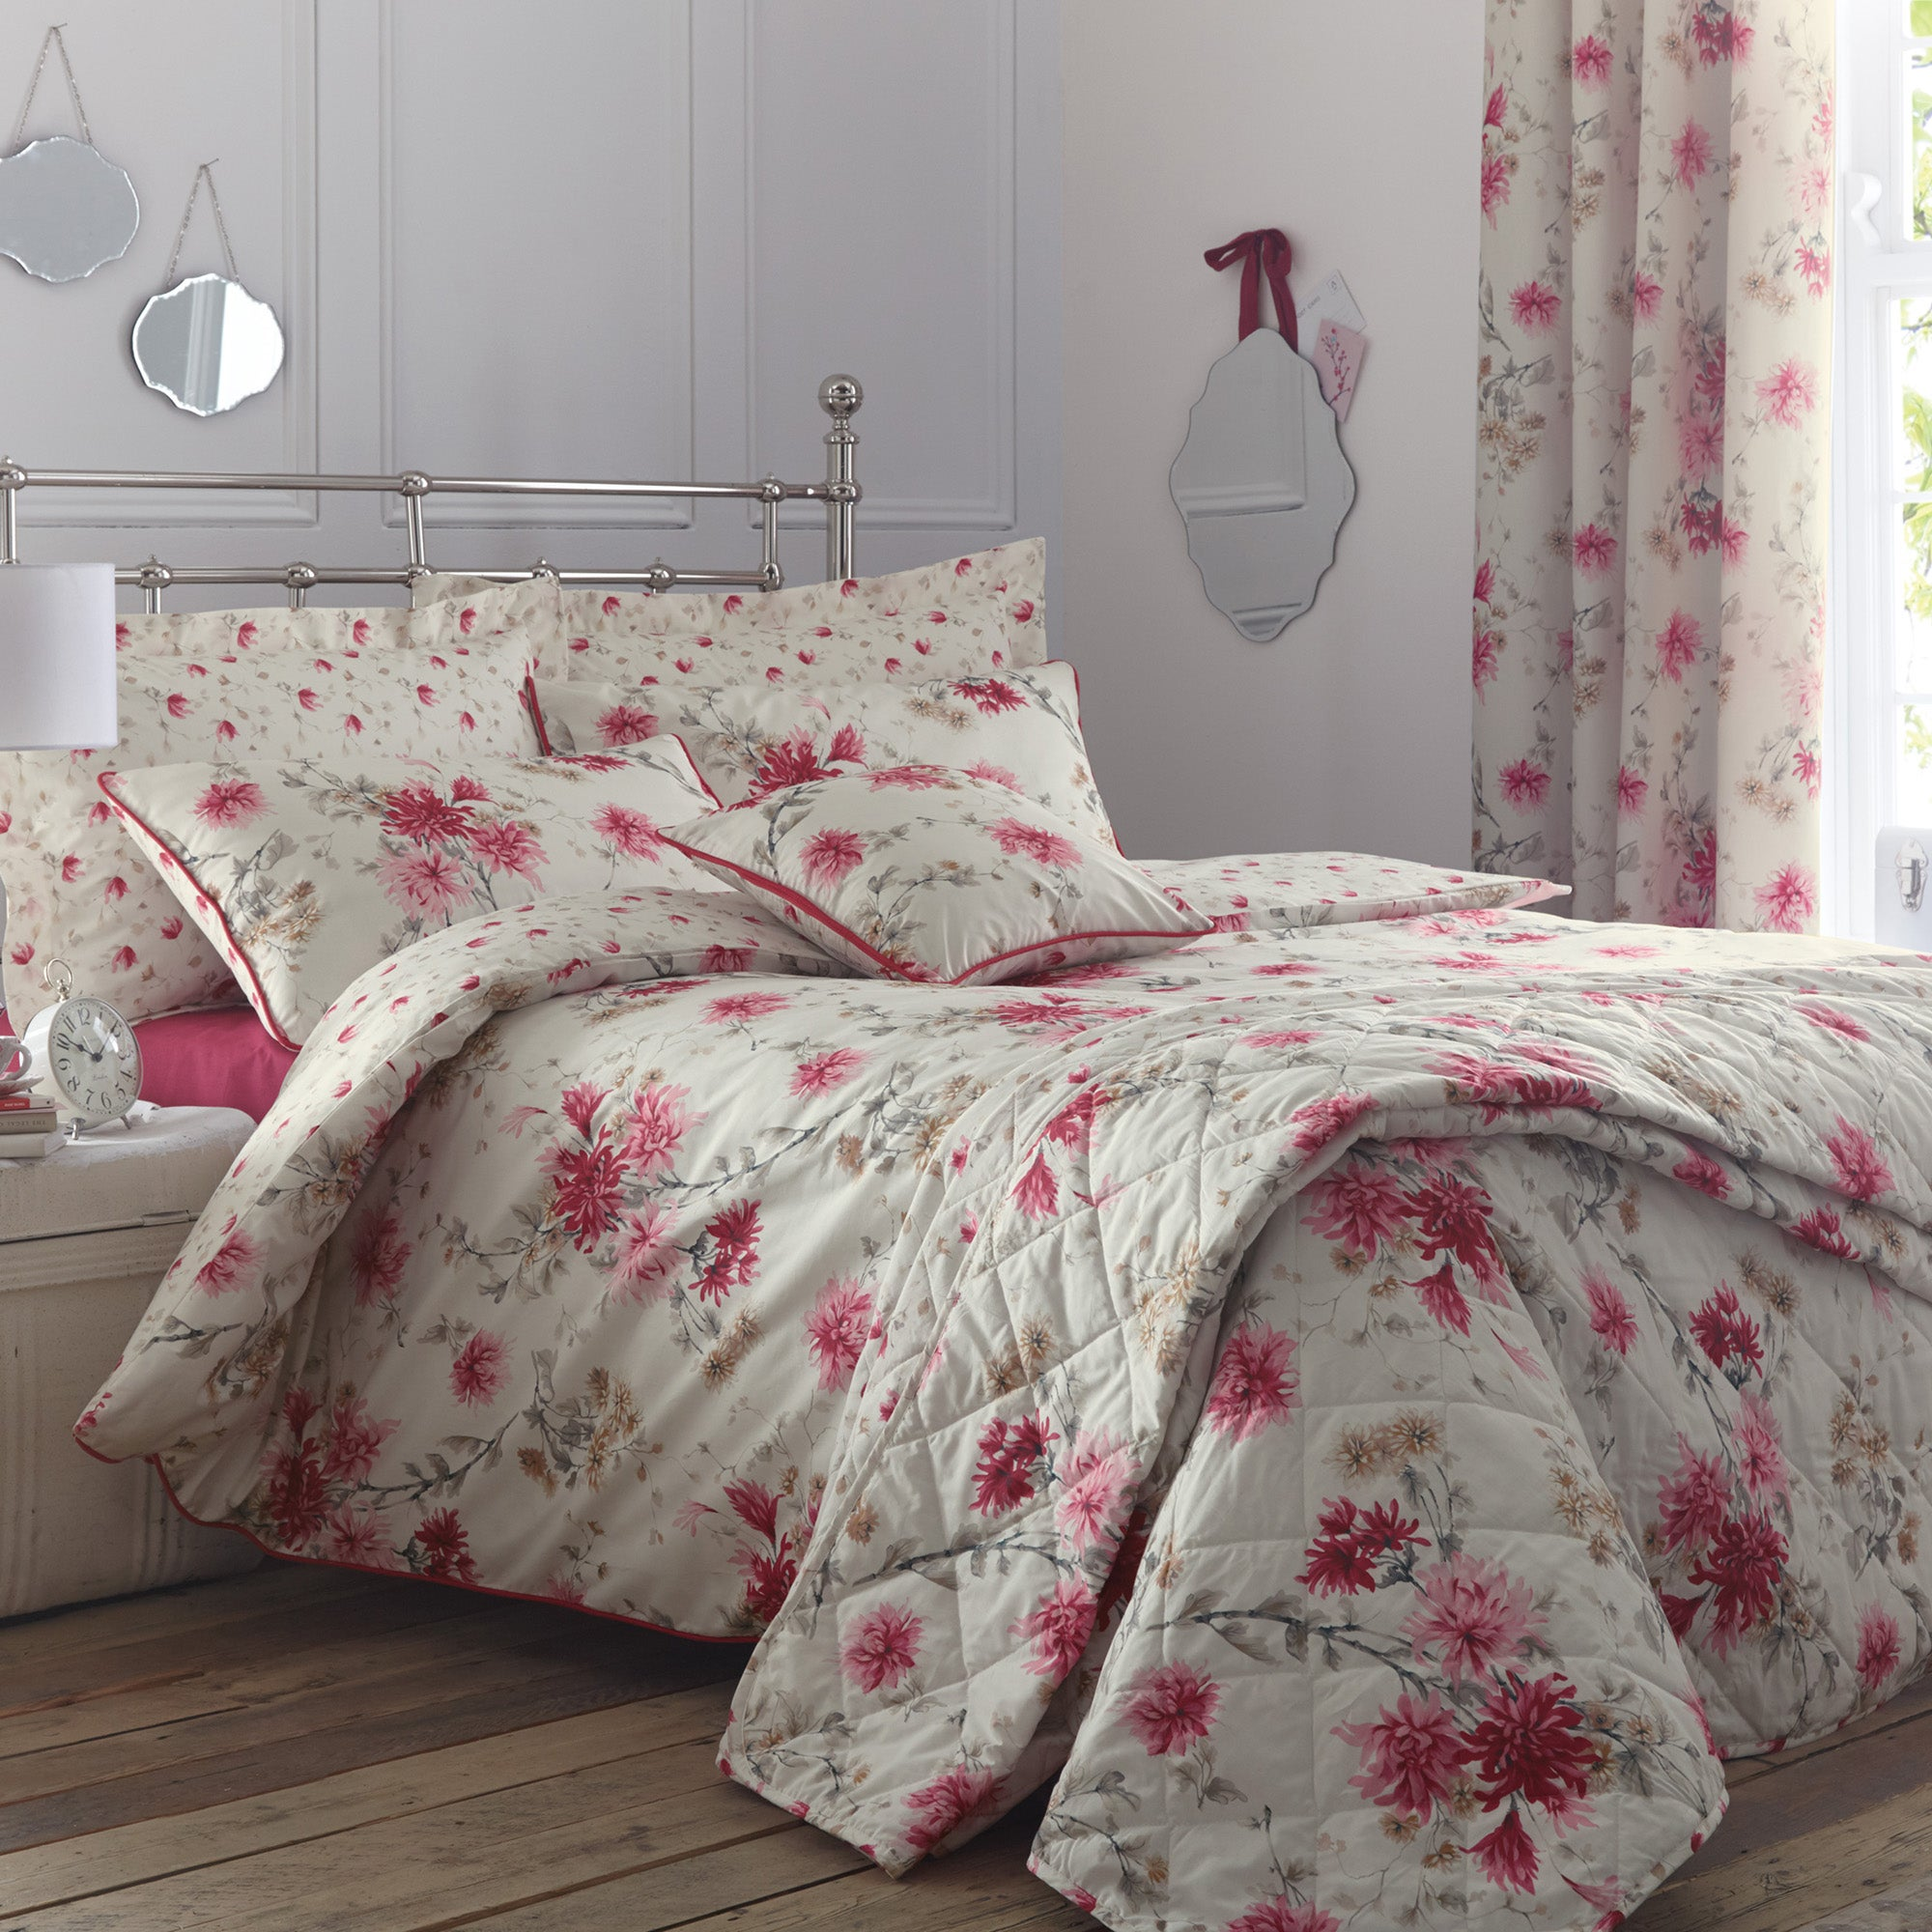 Analise Pink Bed Linen Collection